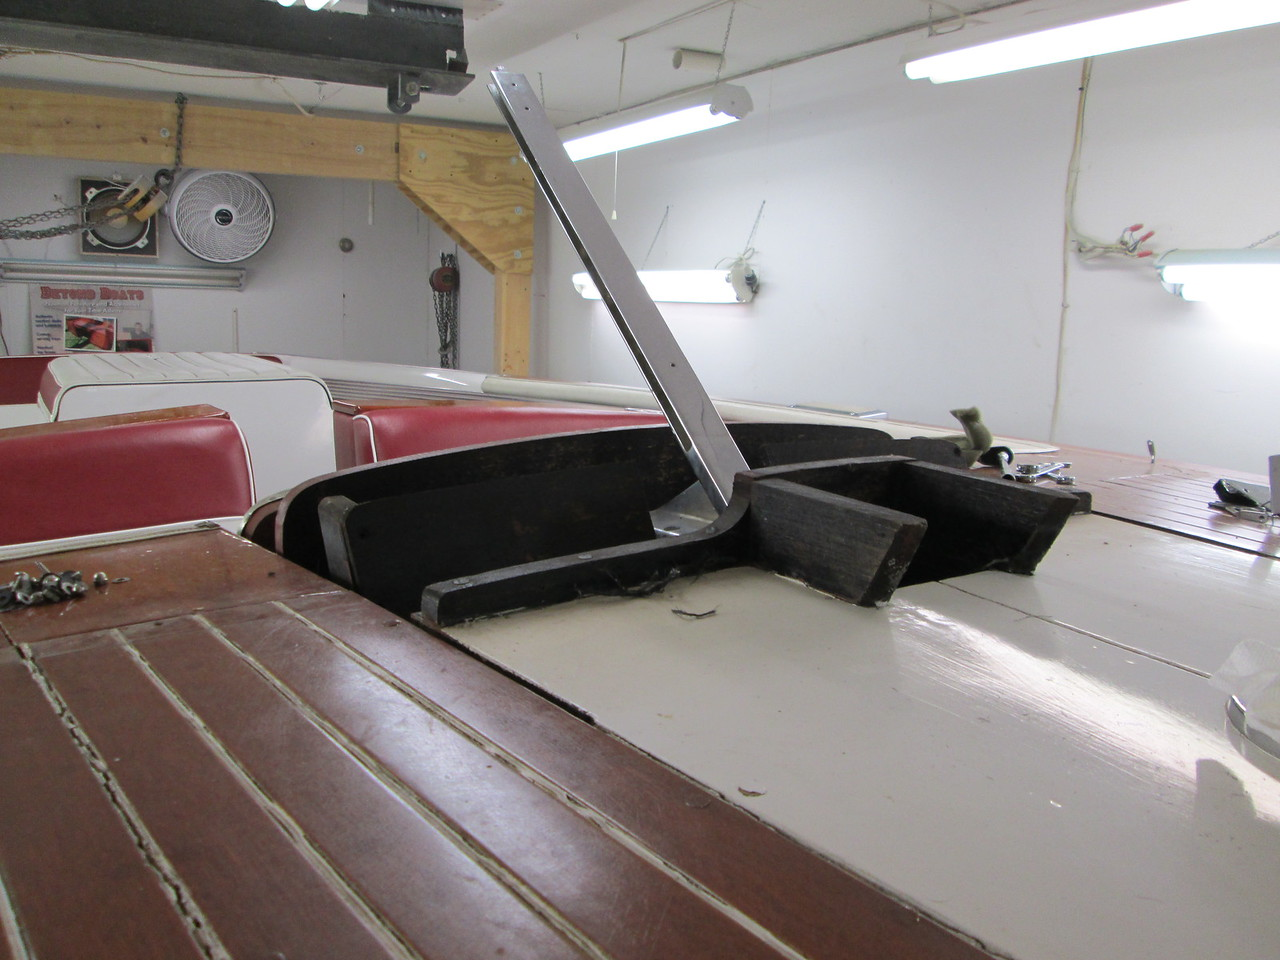 Wind shield and front air vent removed.